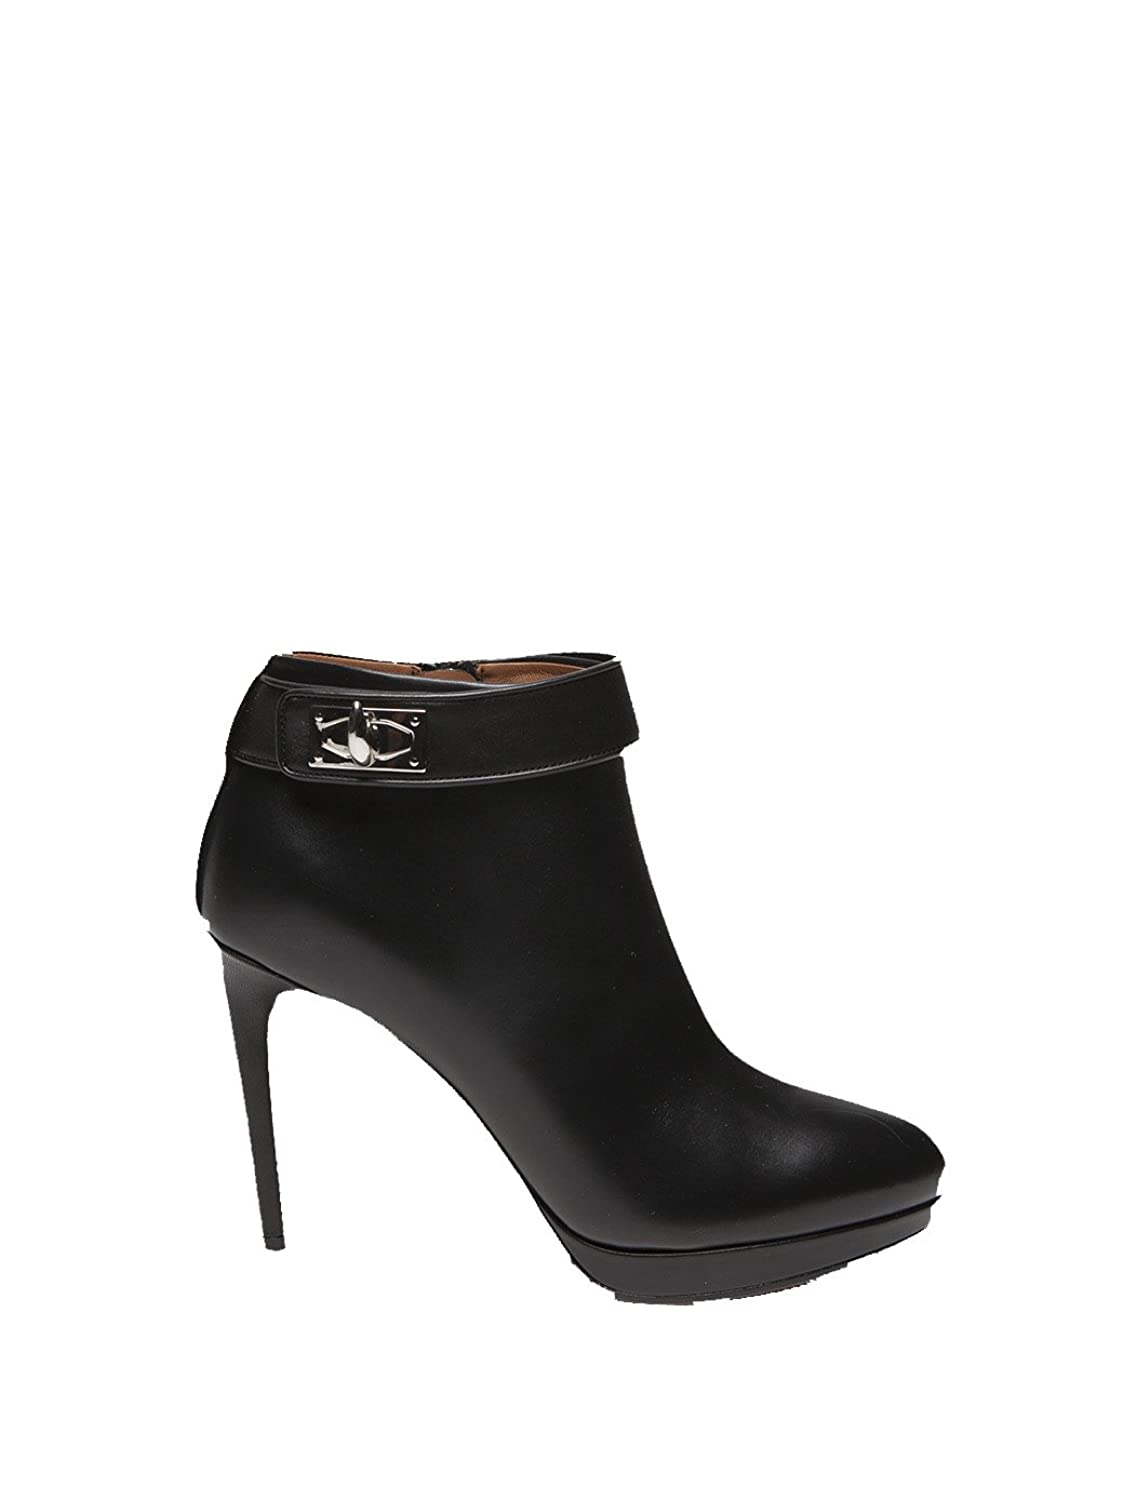 GIVENCHY WOMEN'S BE08820004001 BLACK LEATHER ANKLE BOOTS